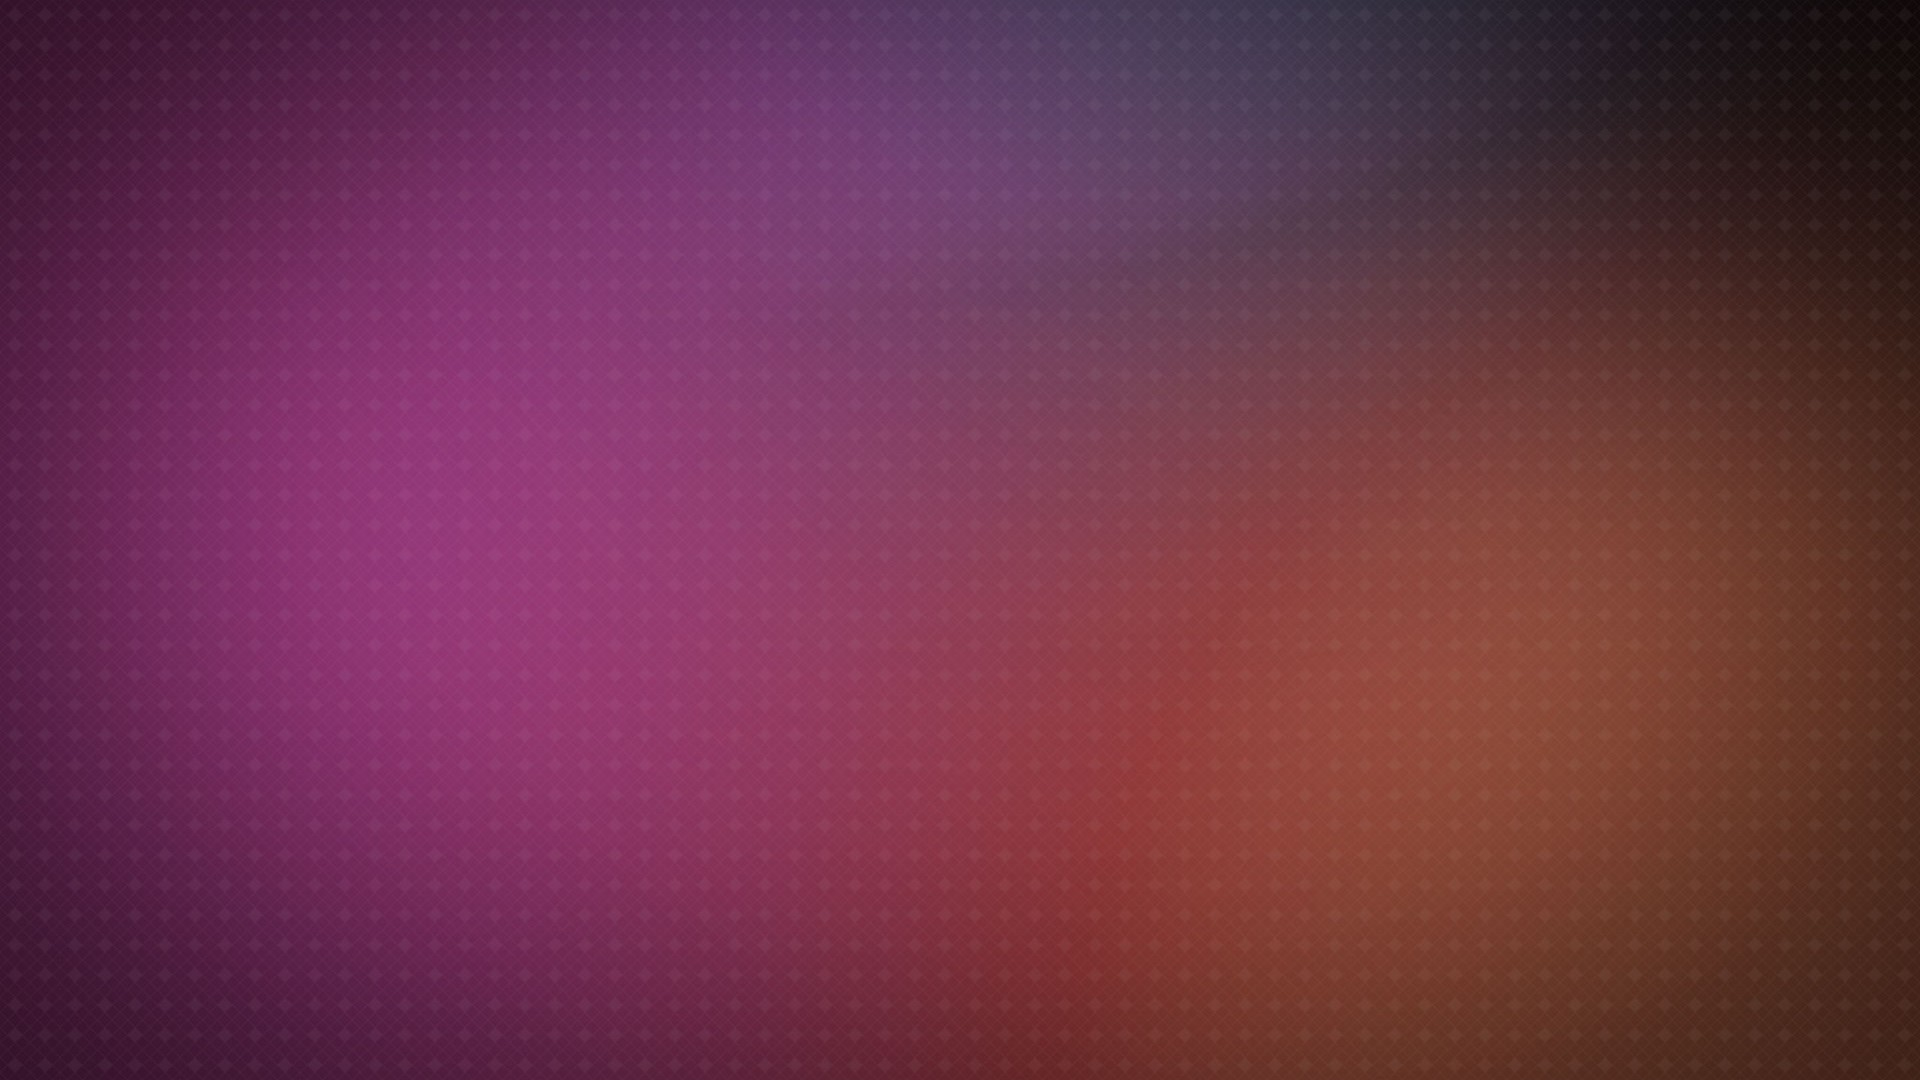 2880x1800 Purple Solid Color Wallpaper Hd Wallpapers